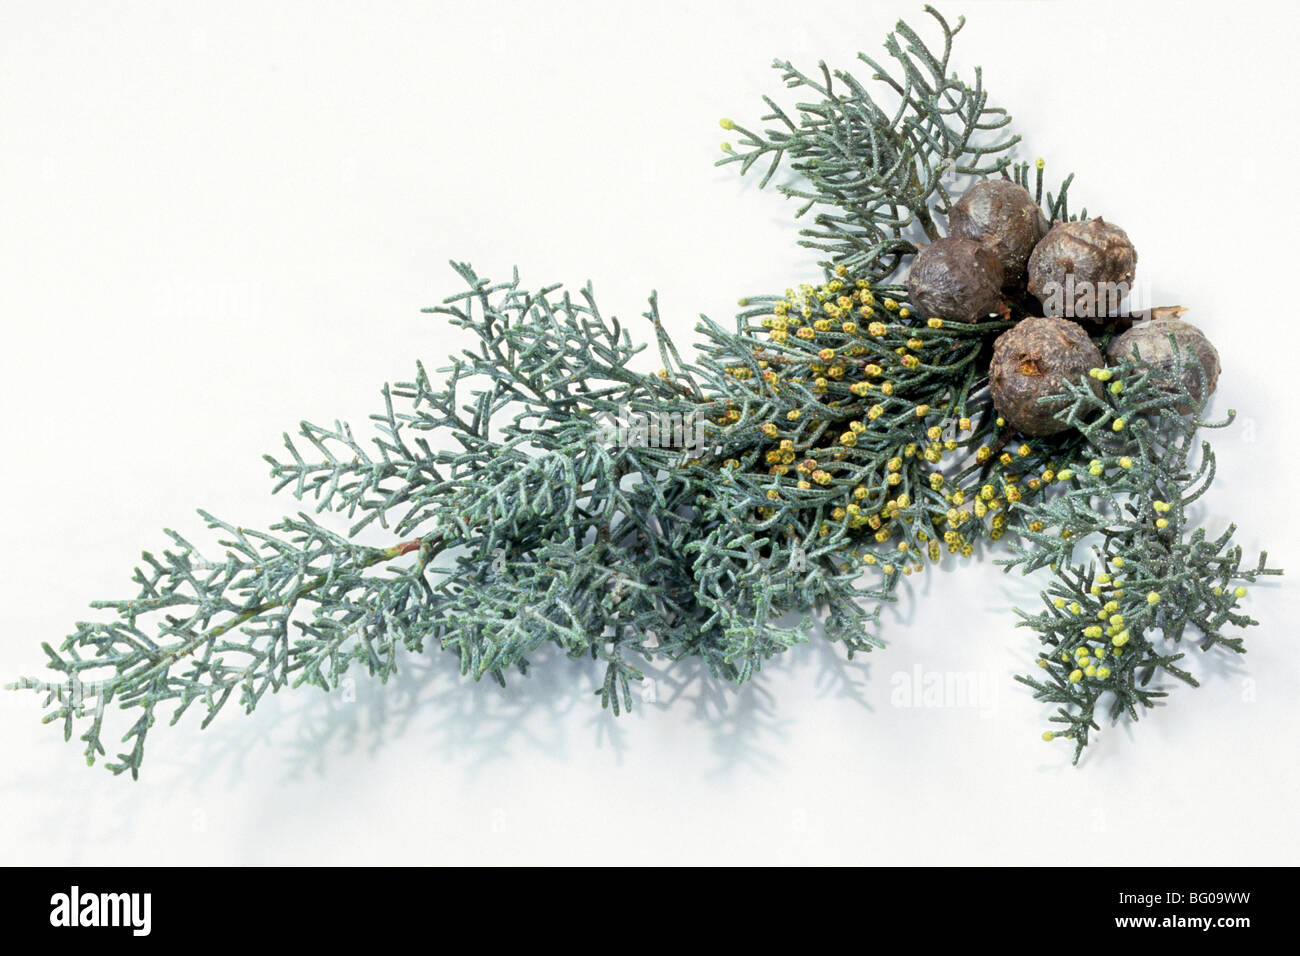 Mediterranean Cypress, Italian Cypress (Cupressus sempervirens), twig with cones, studio picture. - Stock Image